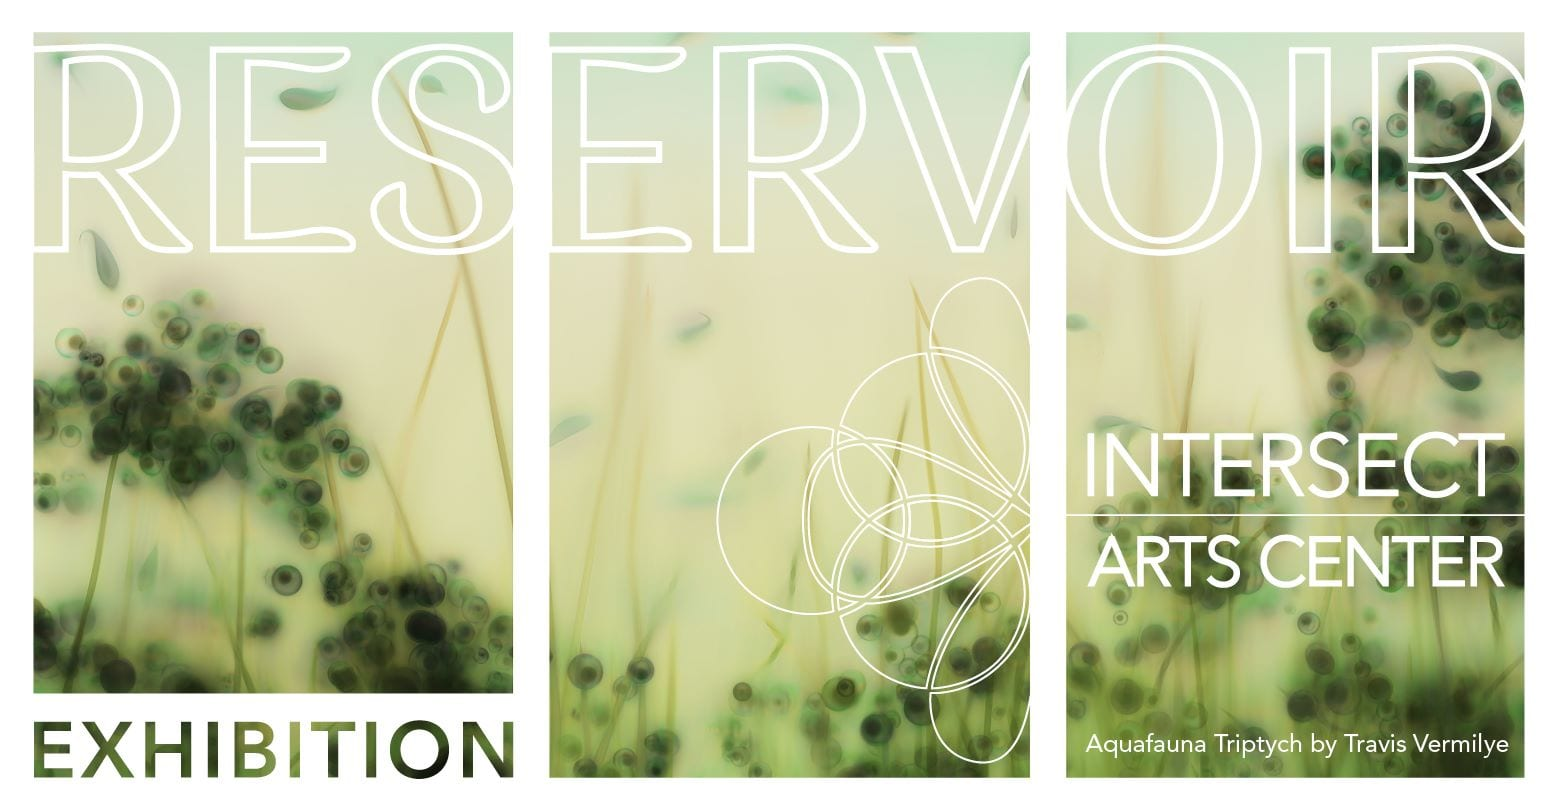 Reservoir exhibition at Intersect Arts Center.